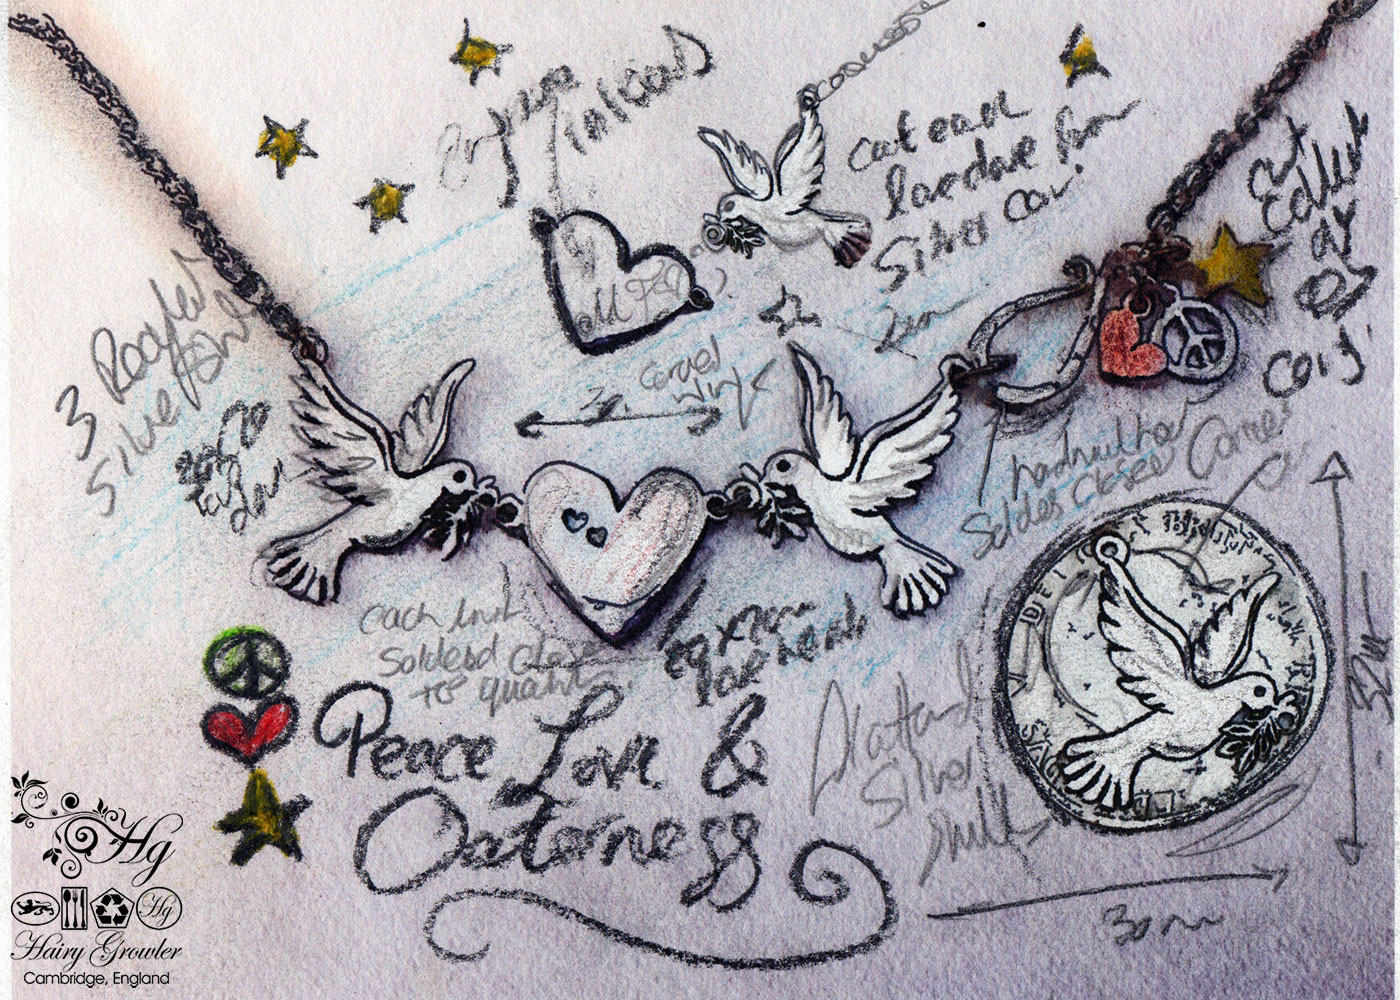 handmade and recycled silver coin love, peace and outerness dove necklace